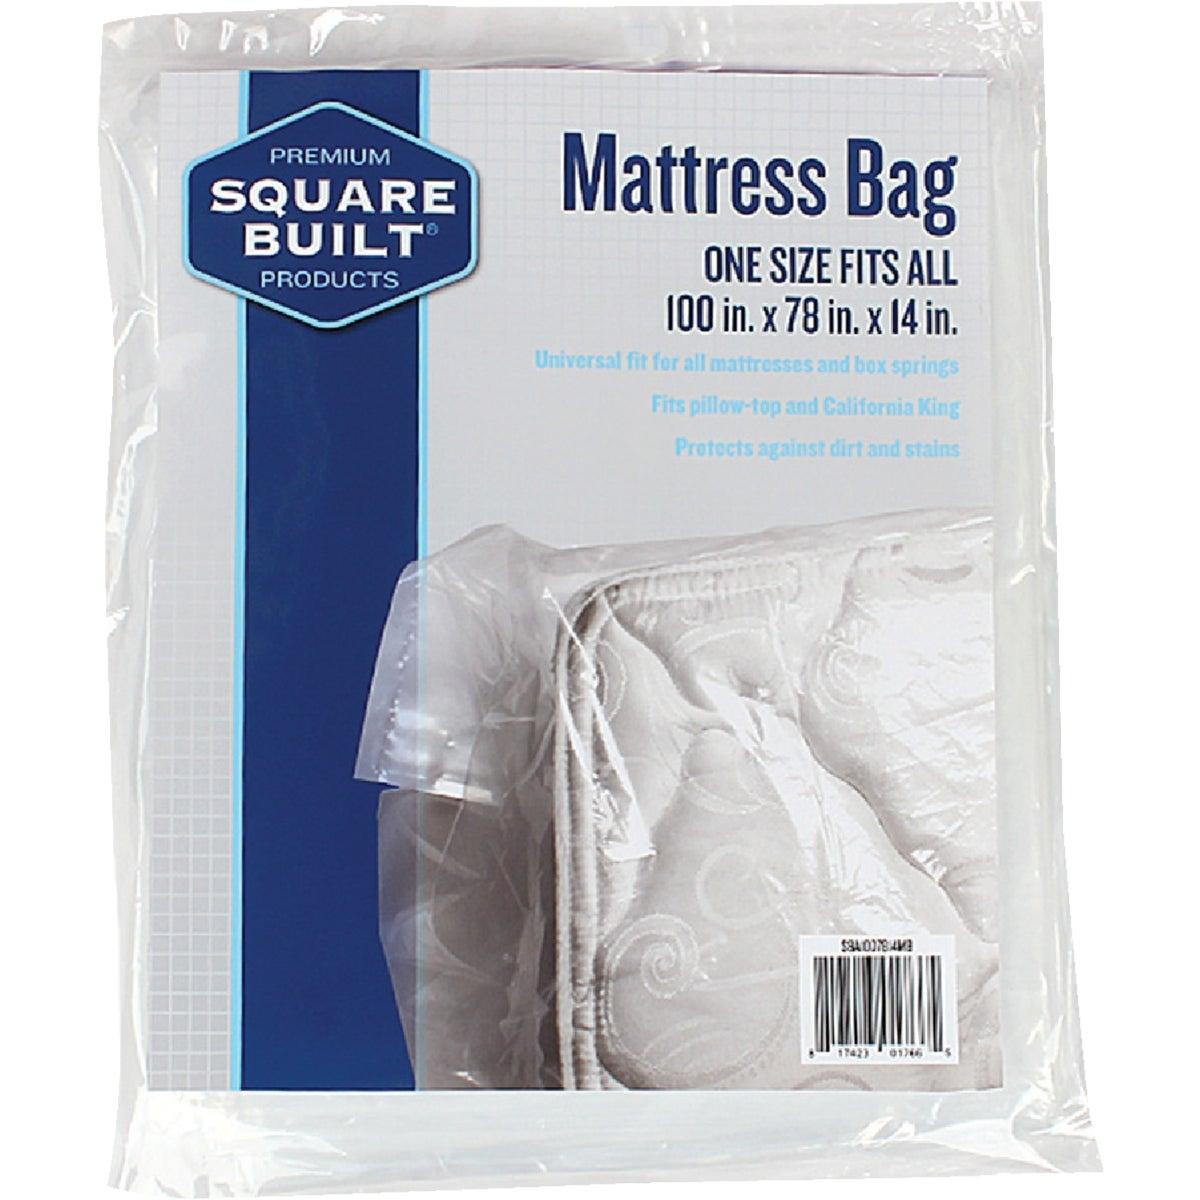 FULL/TWIN MATTRESS BAG - R4633LPT by Broadway Industries